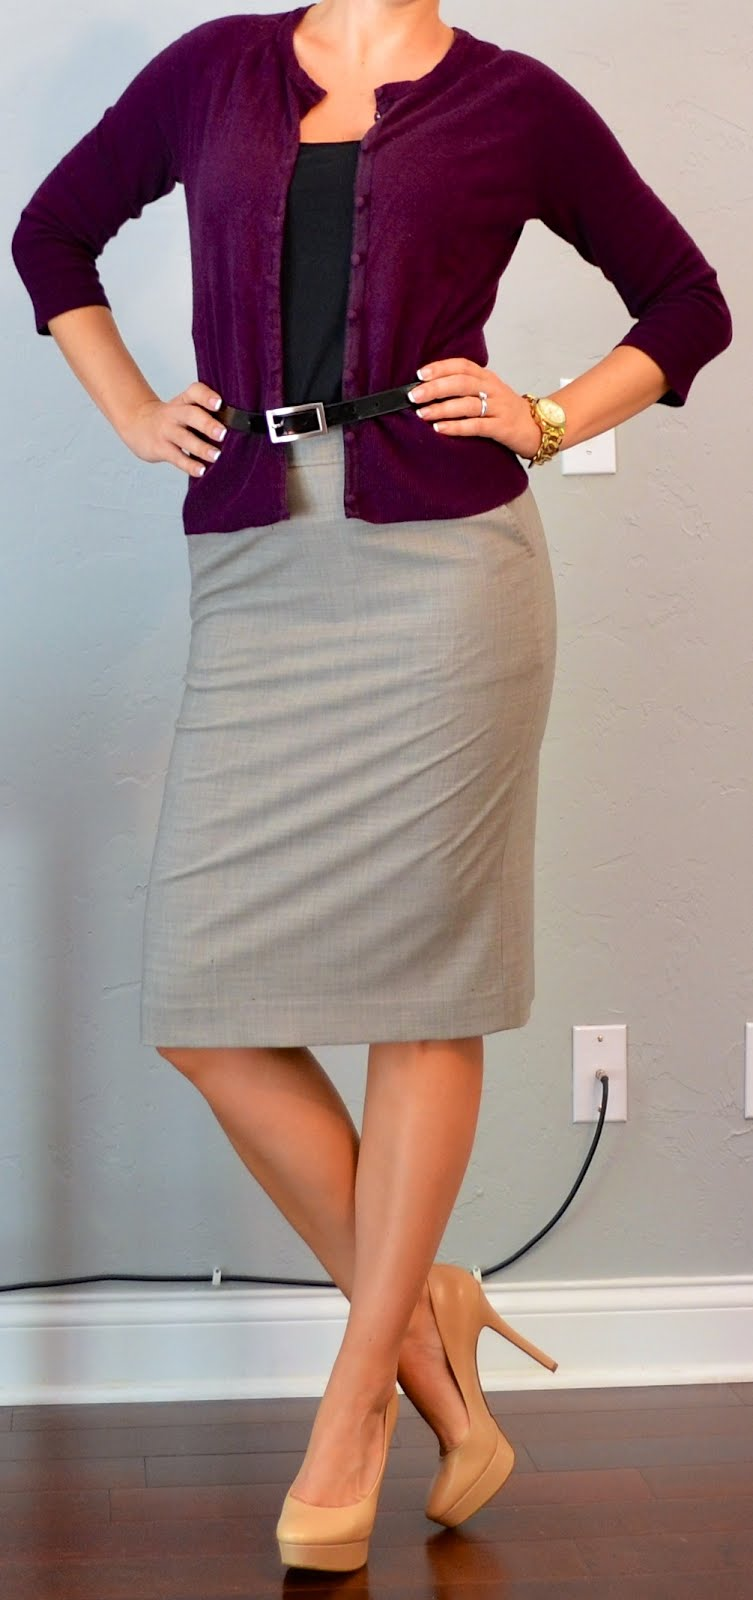 Outfit post grey pencil skirt plum cardigan nude pumps